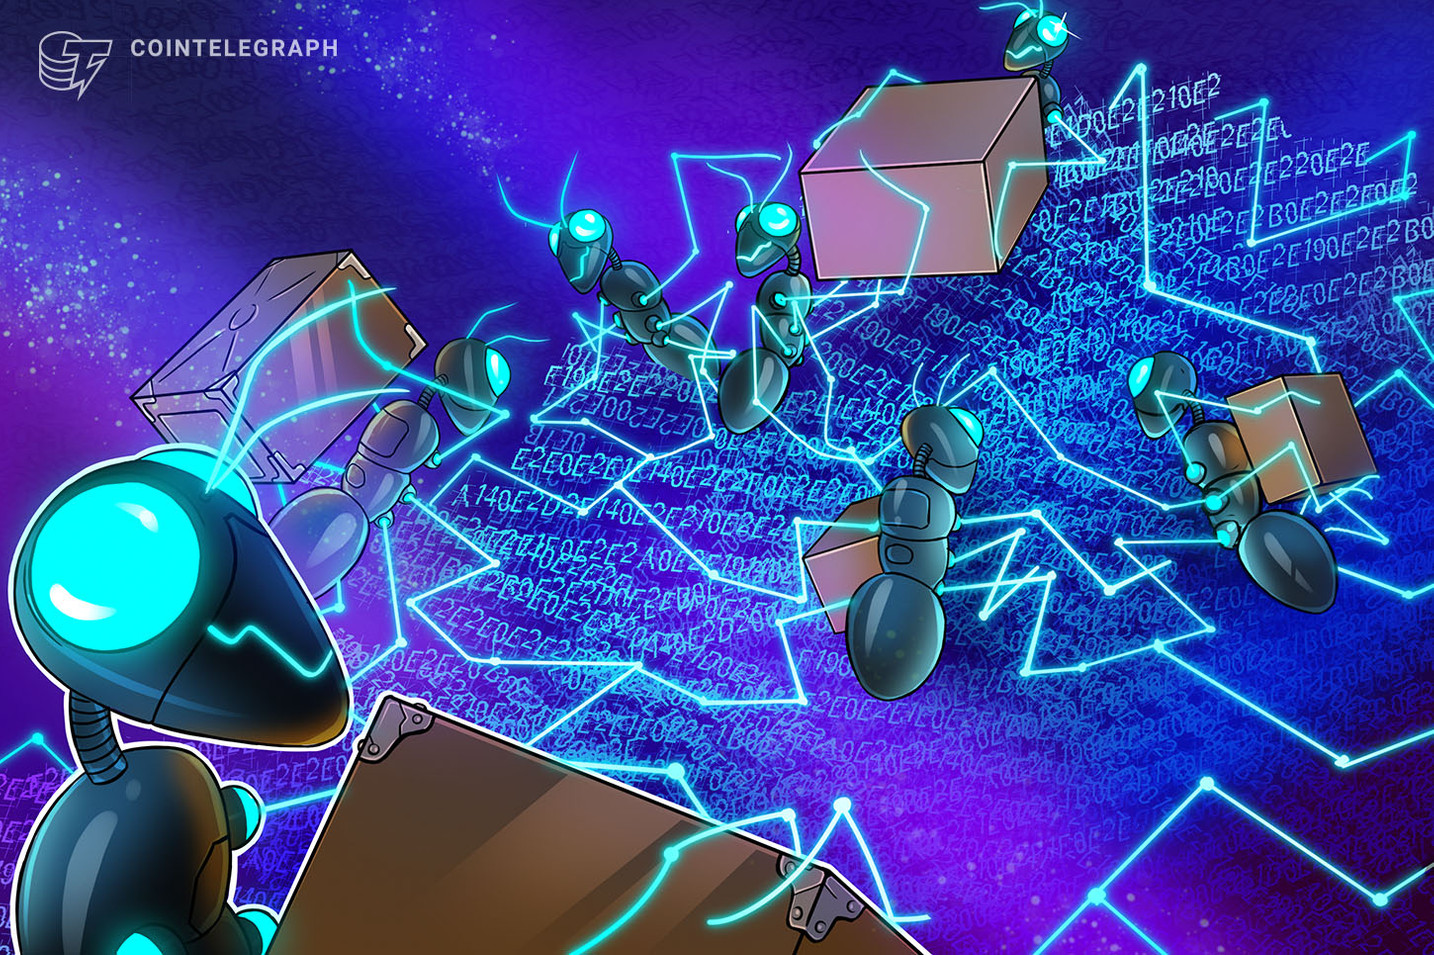 US Blockchain Firm Partners with Sustainable Construction Firm to Design Data Centers